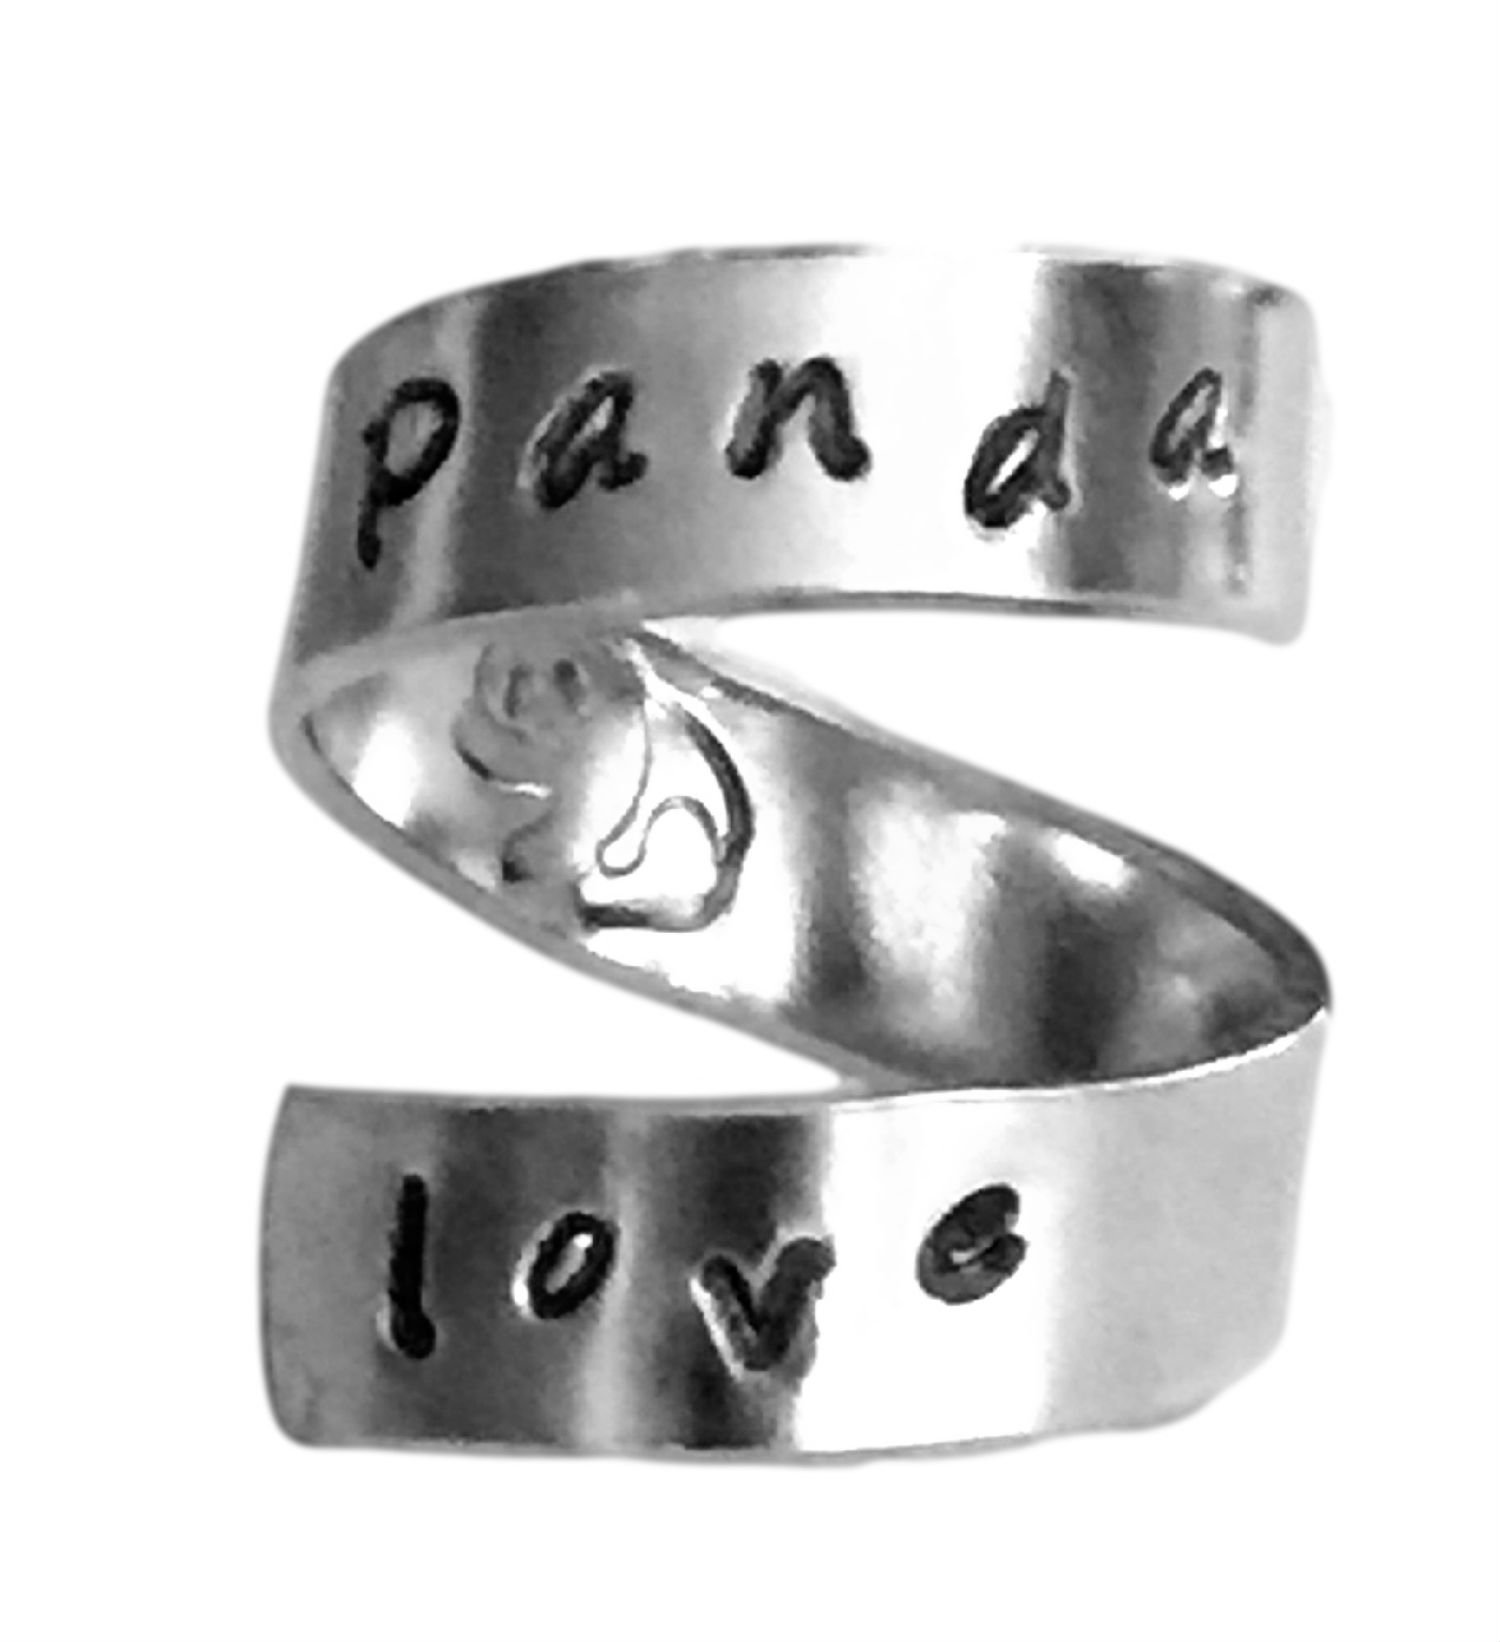 Panda Love Hand Stamped Aluminum Spiral Ring by Hand Trades (Image #1)